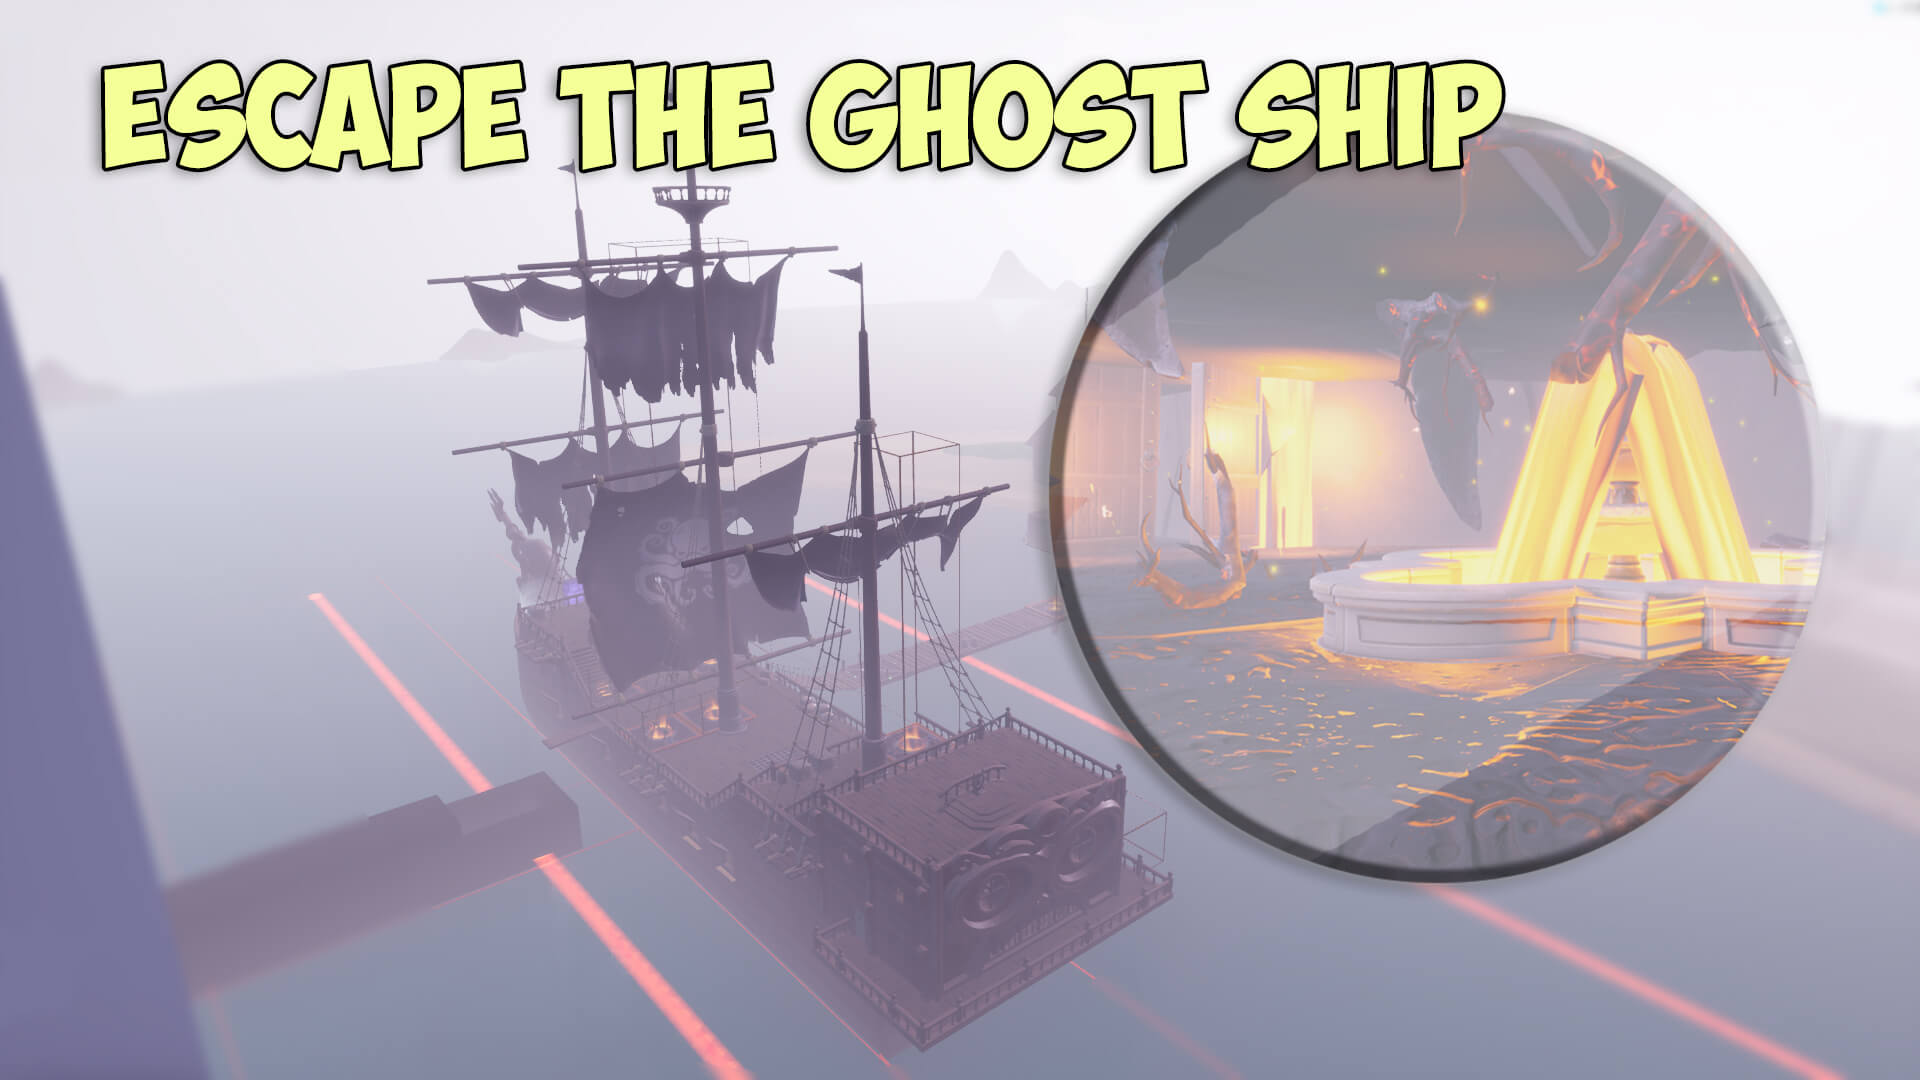 ESCAPE THE GHOST SHIP.